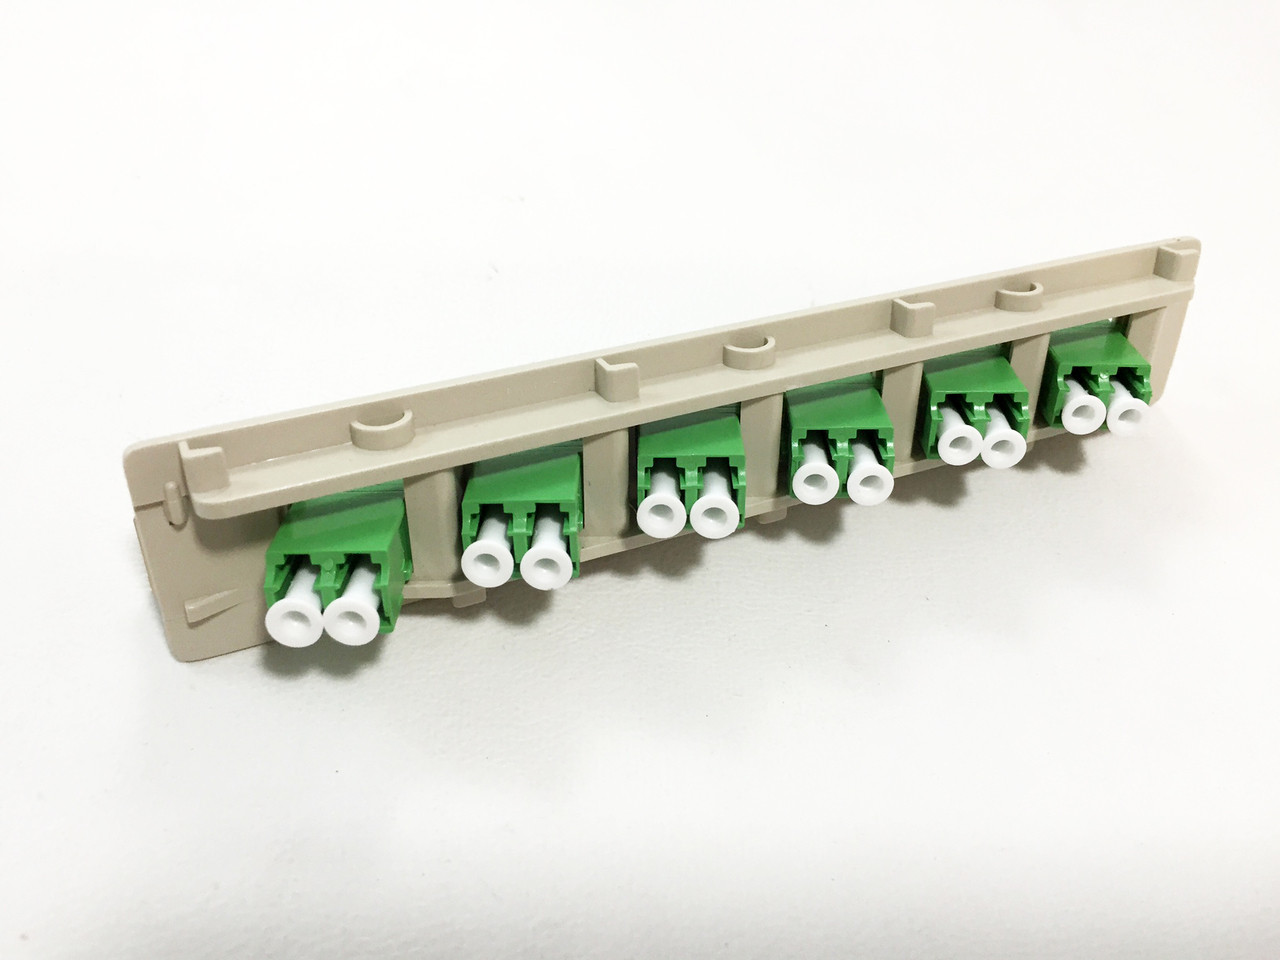 FL2 type 6 PACK SM LCA DUPLEX 12 port Fiber Adapter Plate - Equal to FL2-6PSMALC